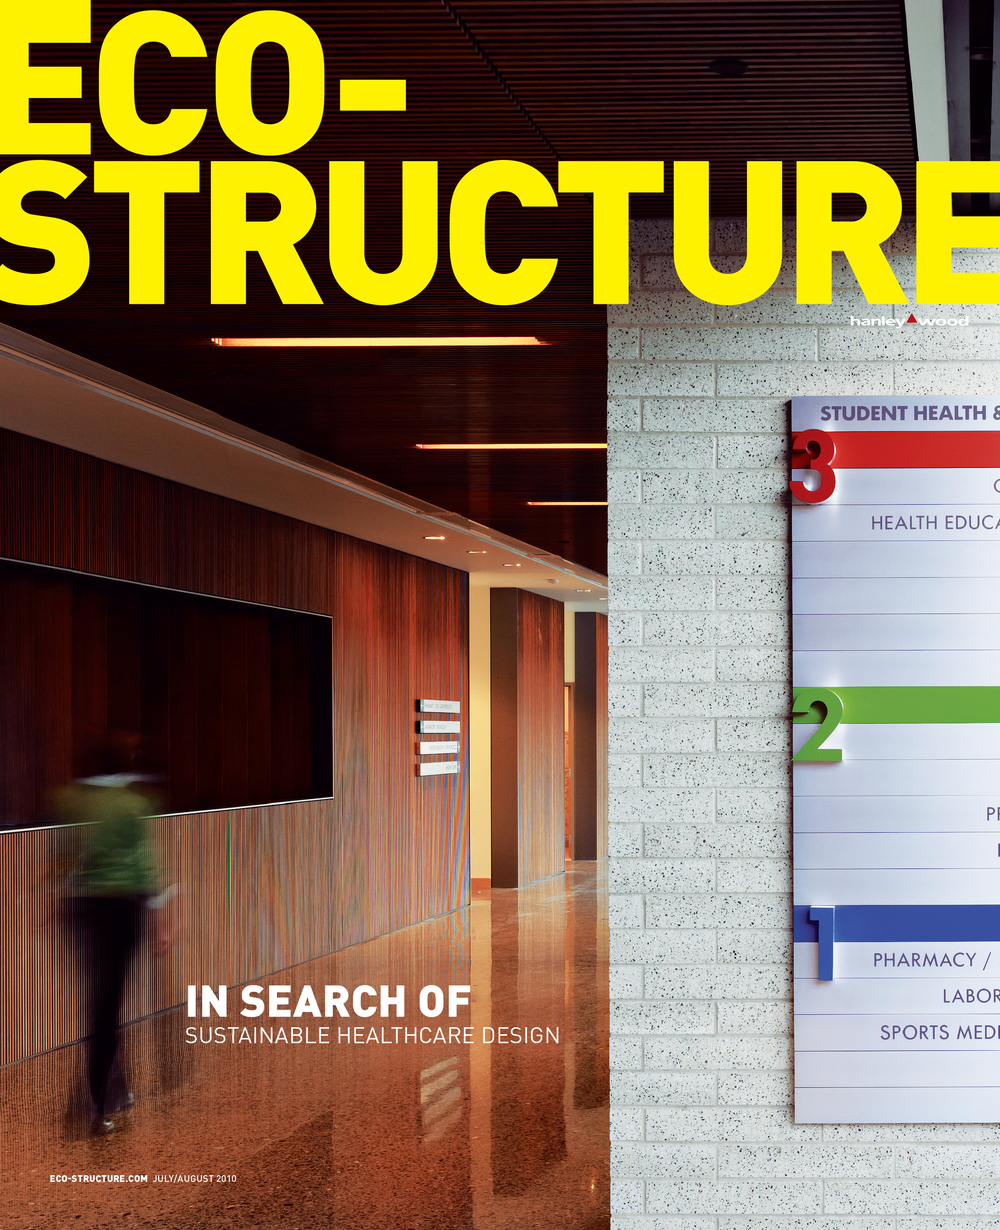 ecostructure july 2010 cover.jpg